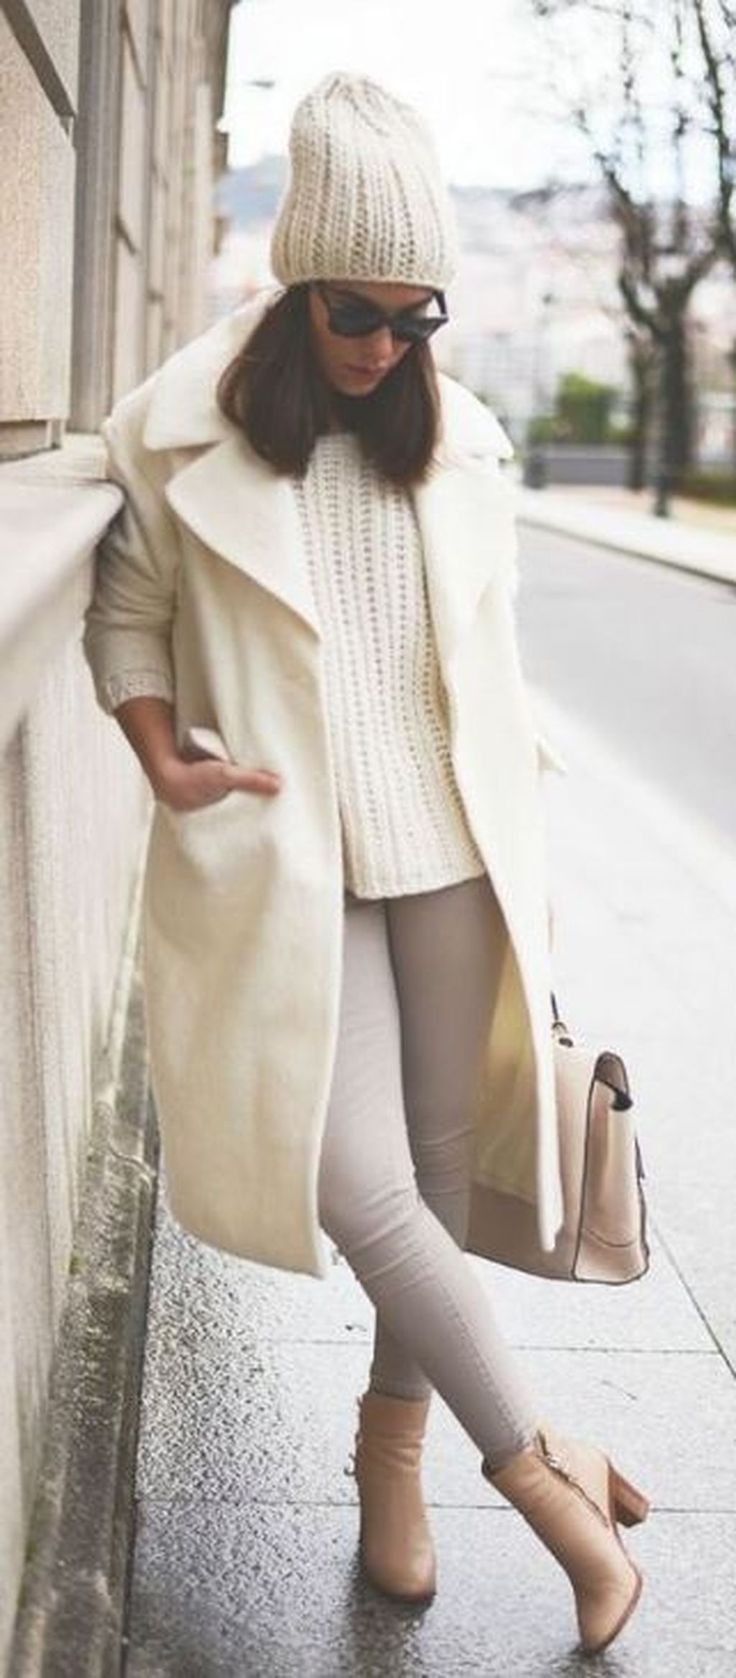 Cool 41 Cute Women Winter Outfit Ideas 2018. More at http://aksahinjewelry.com/2018/01/04/41-cute-women-winter-outfit-ideas-2018/